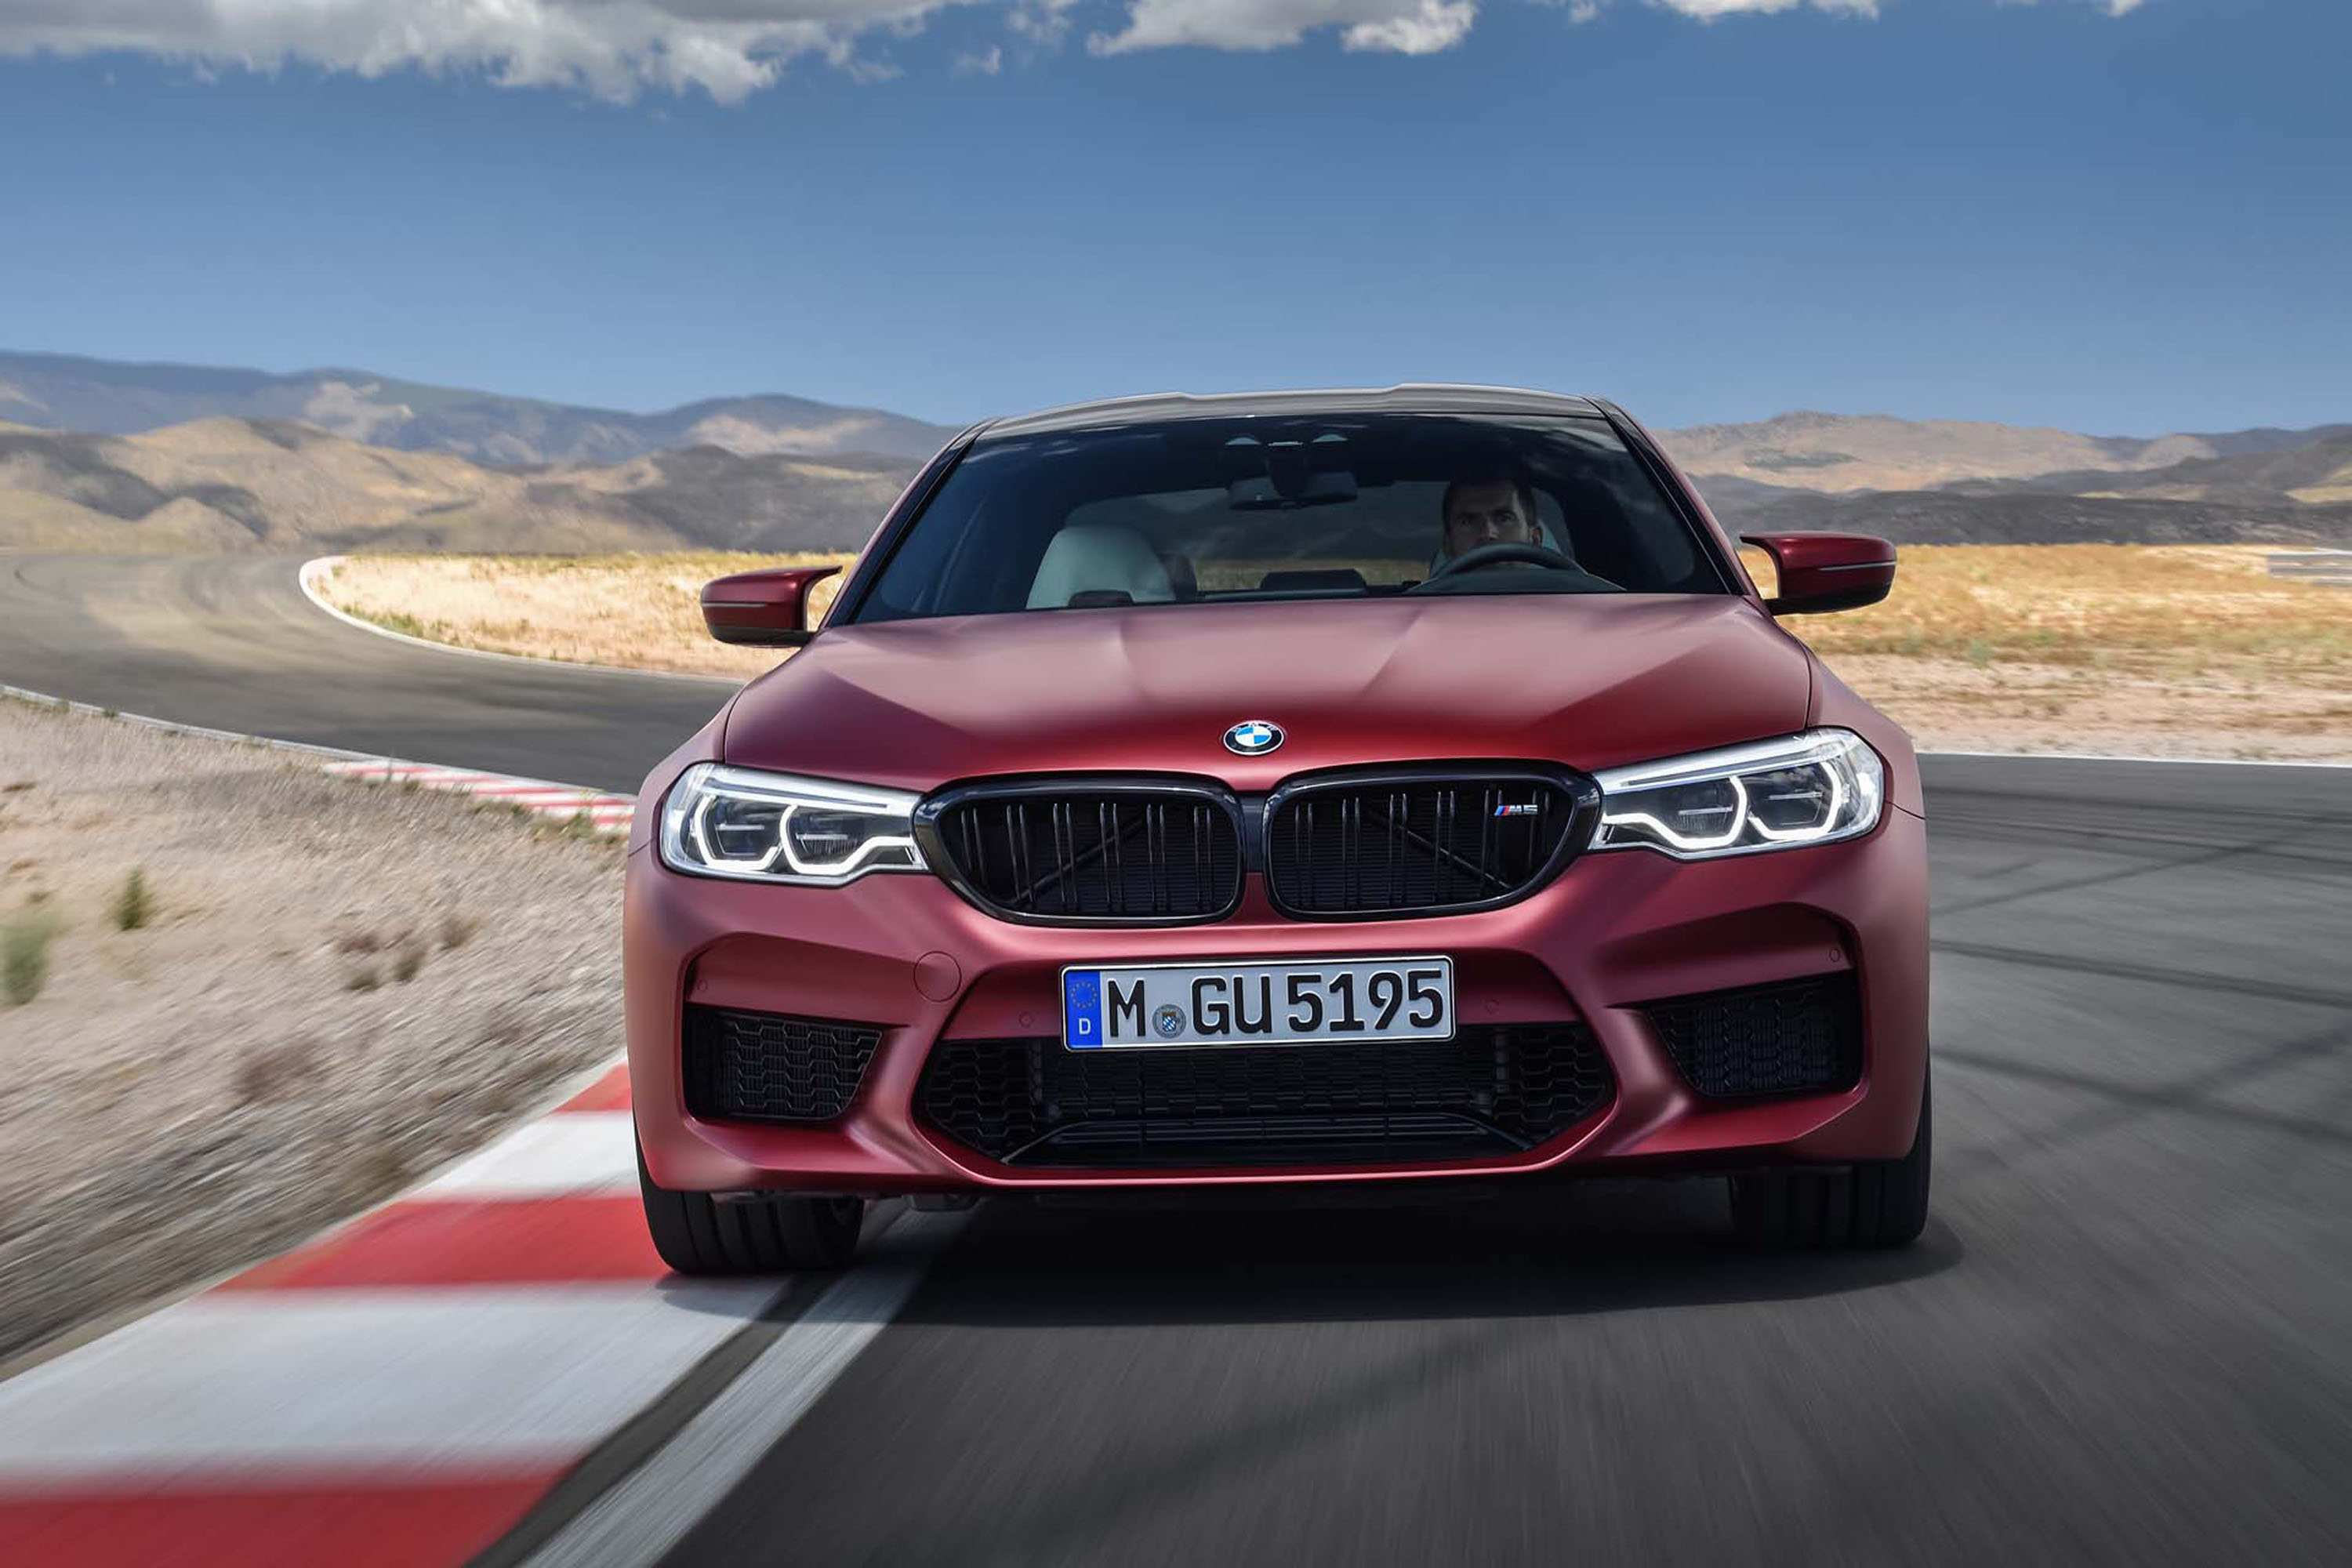 84 New 2020 BMW M5 Xdrive Awd Exterior